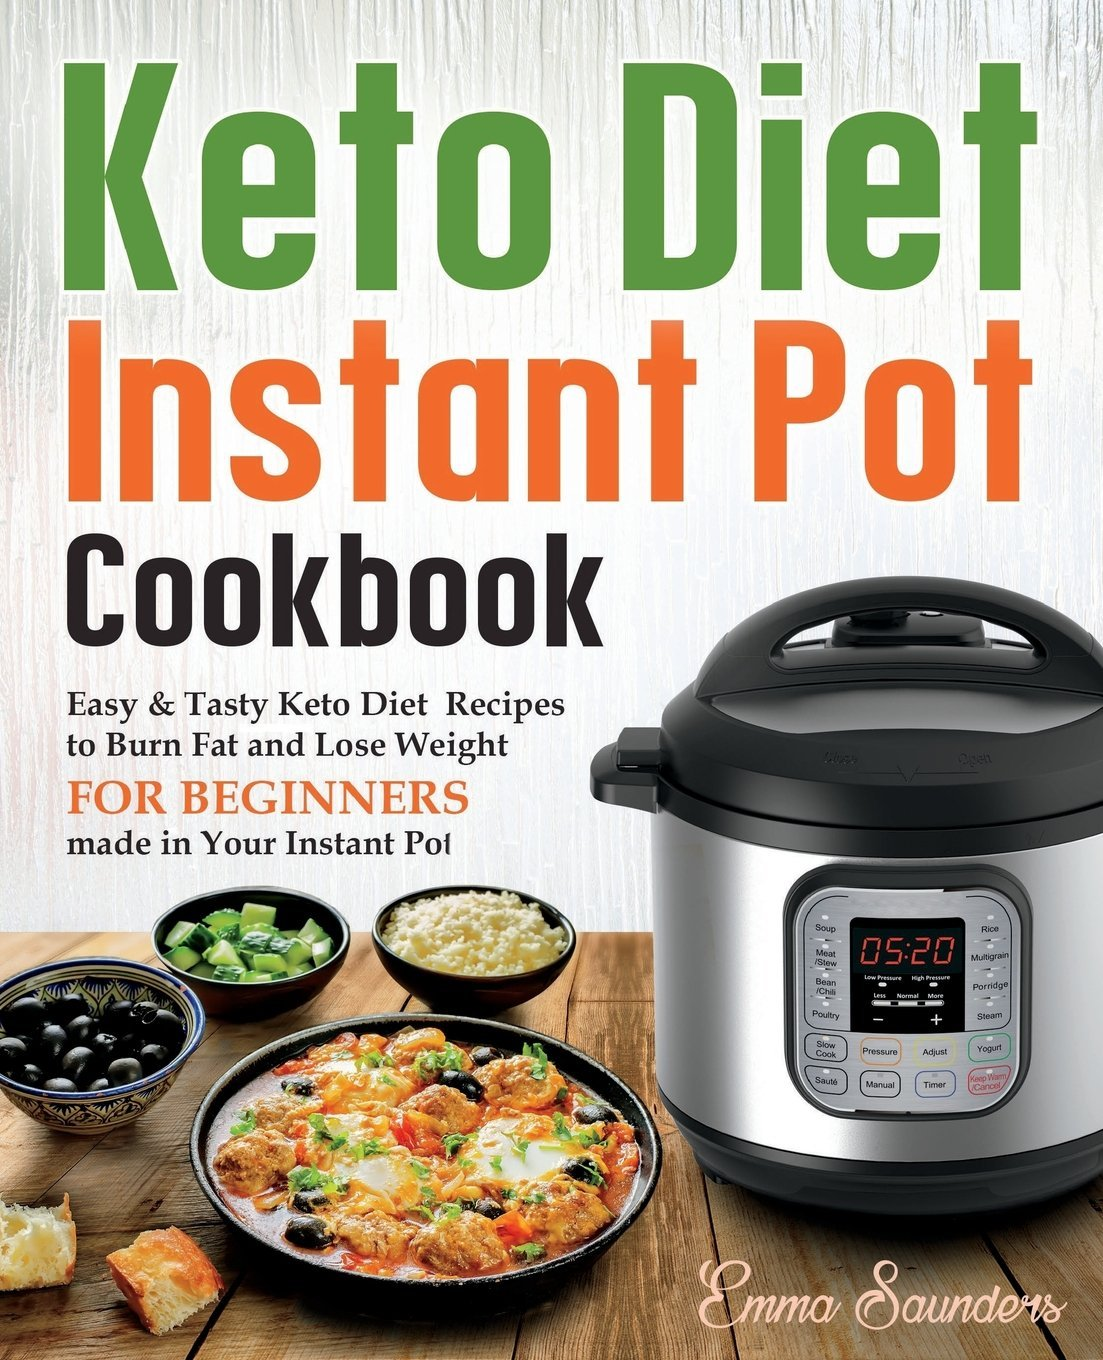 This New Instant Pot Cookbook Makes Losing Weight Damn Easy advise